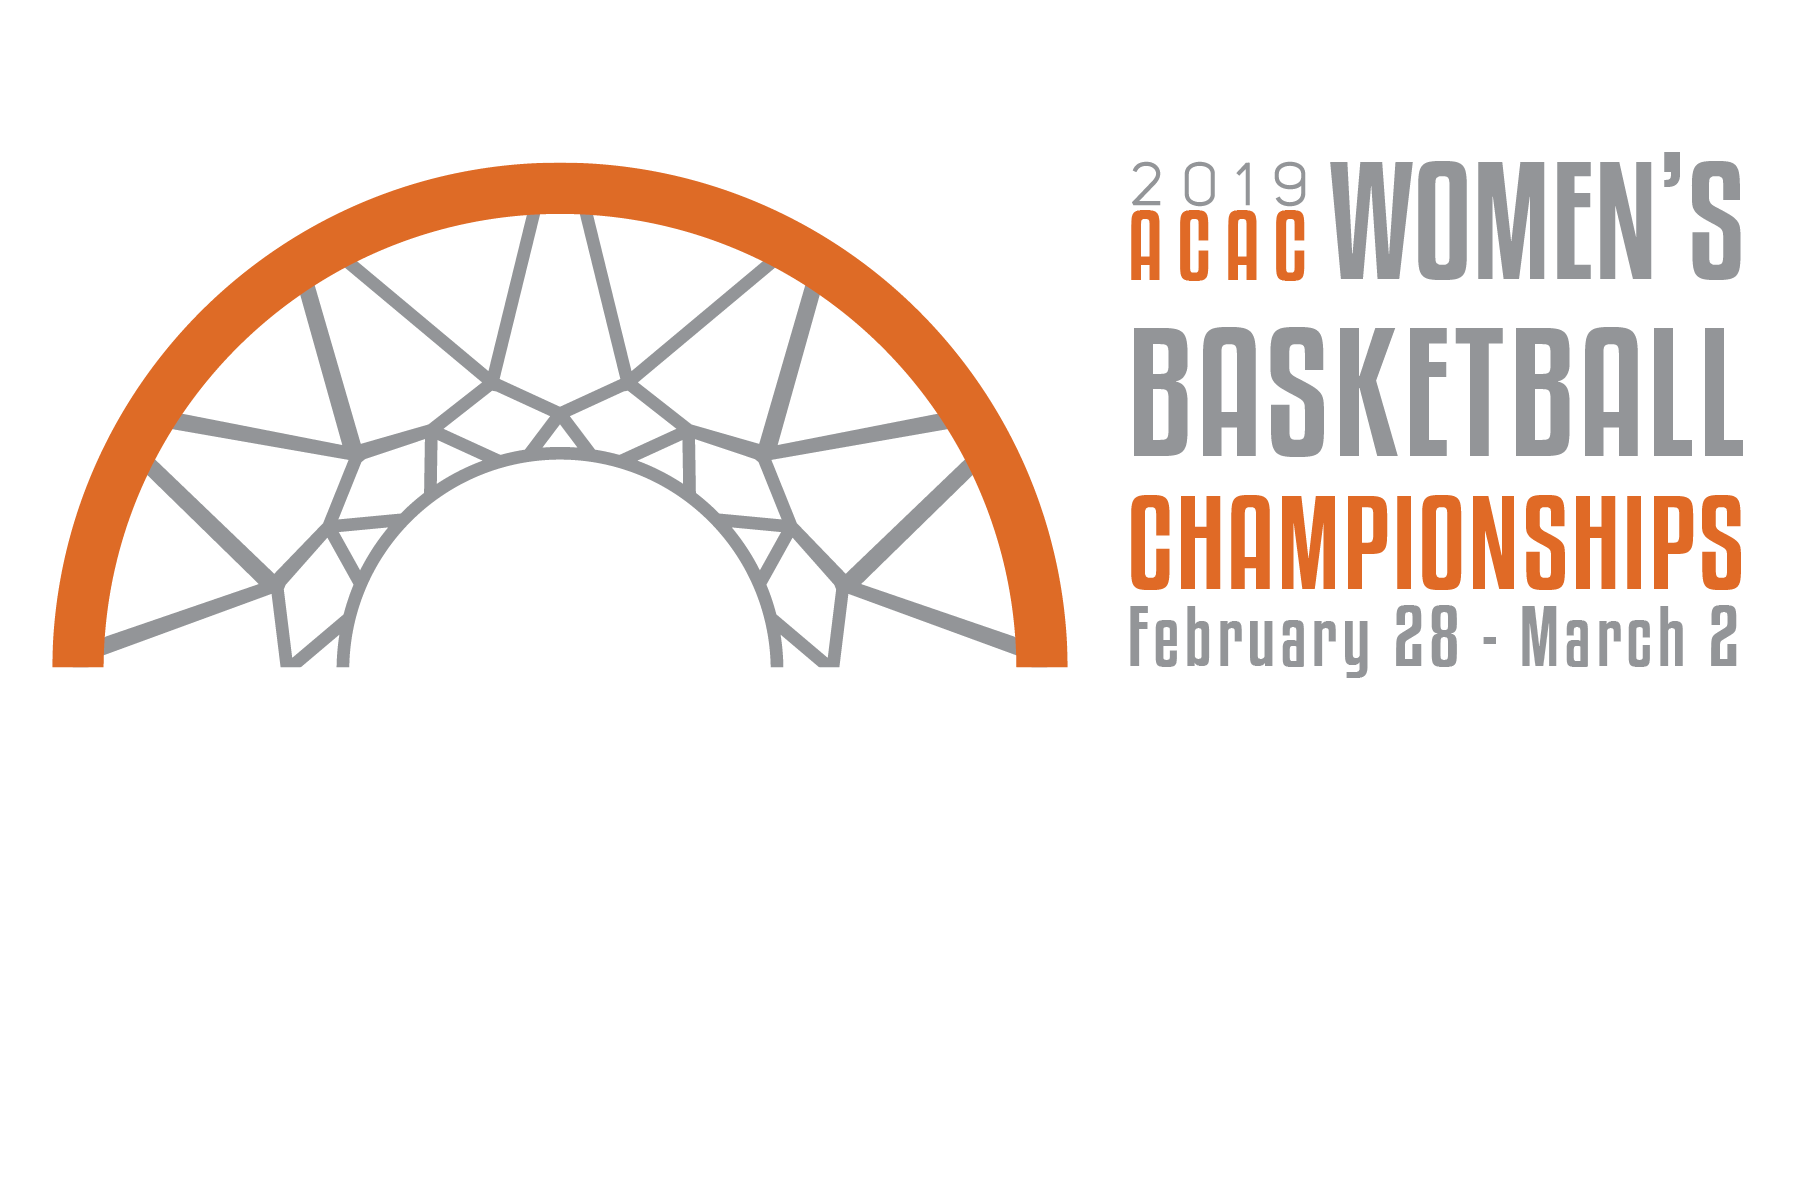 Keyano To Host 2019 ACAC Women's Basketball Championships